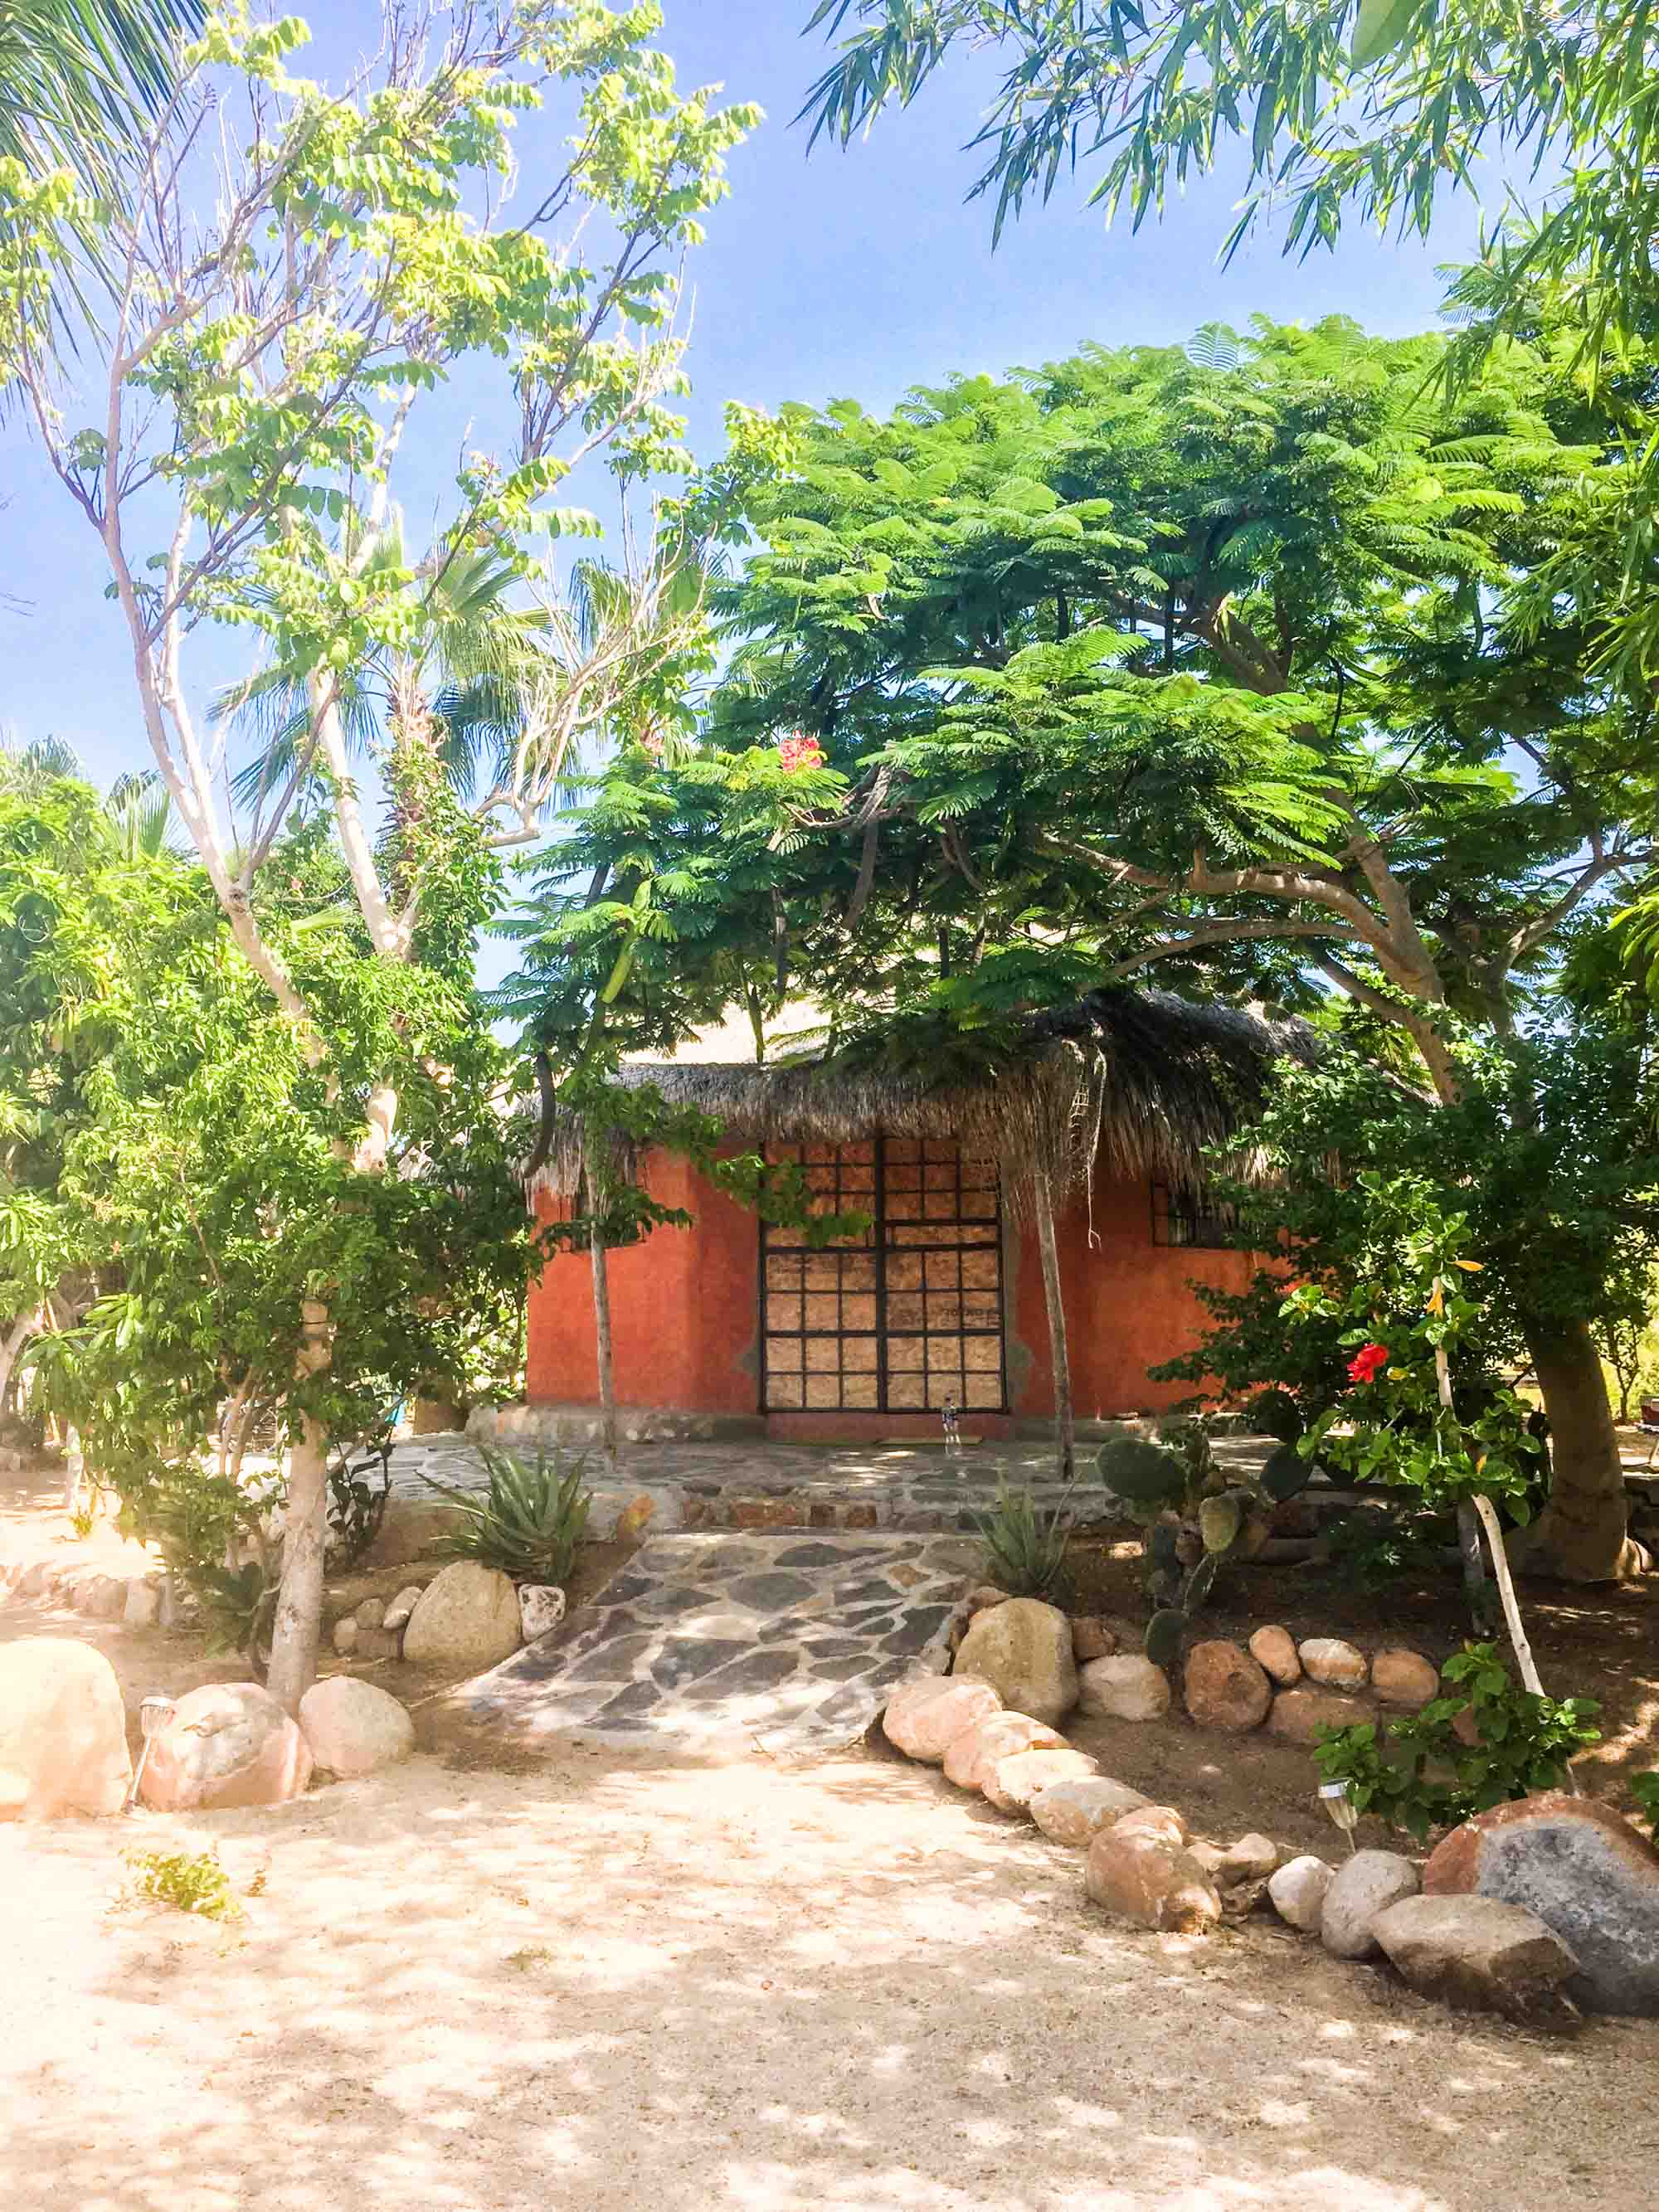 An Airbnb in Todos Santos, a remote, private stone hut surrounded by tropical trees, plants and wildlife. Mexico.